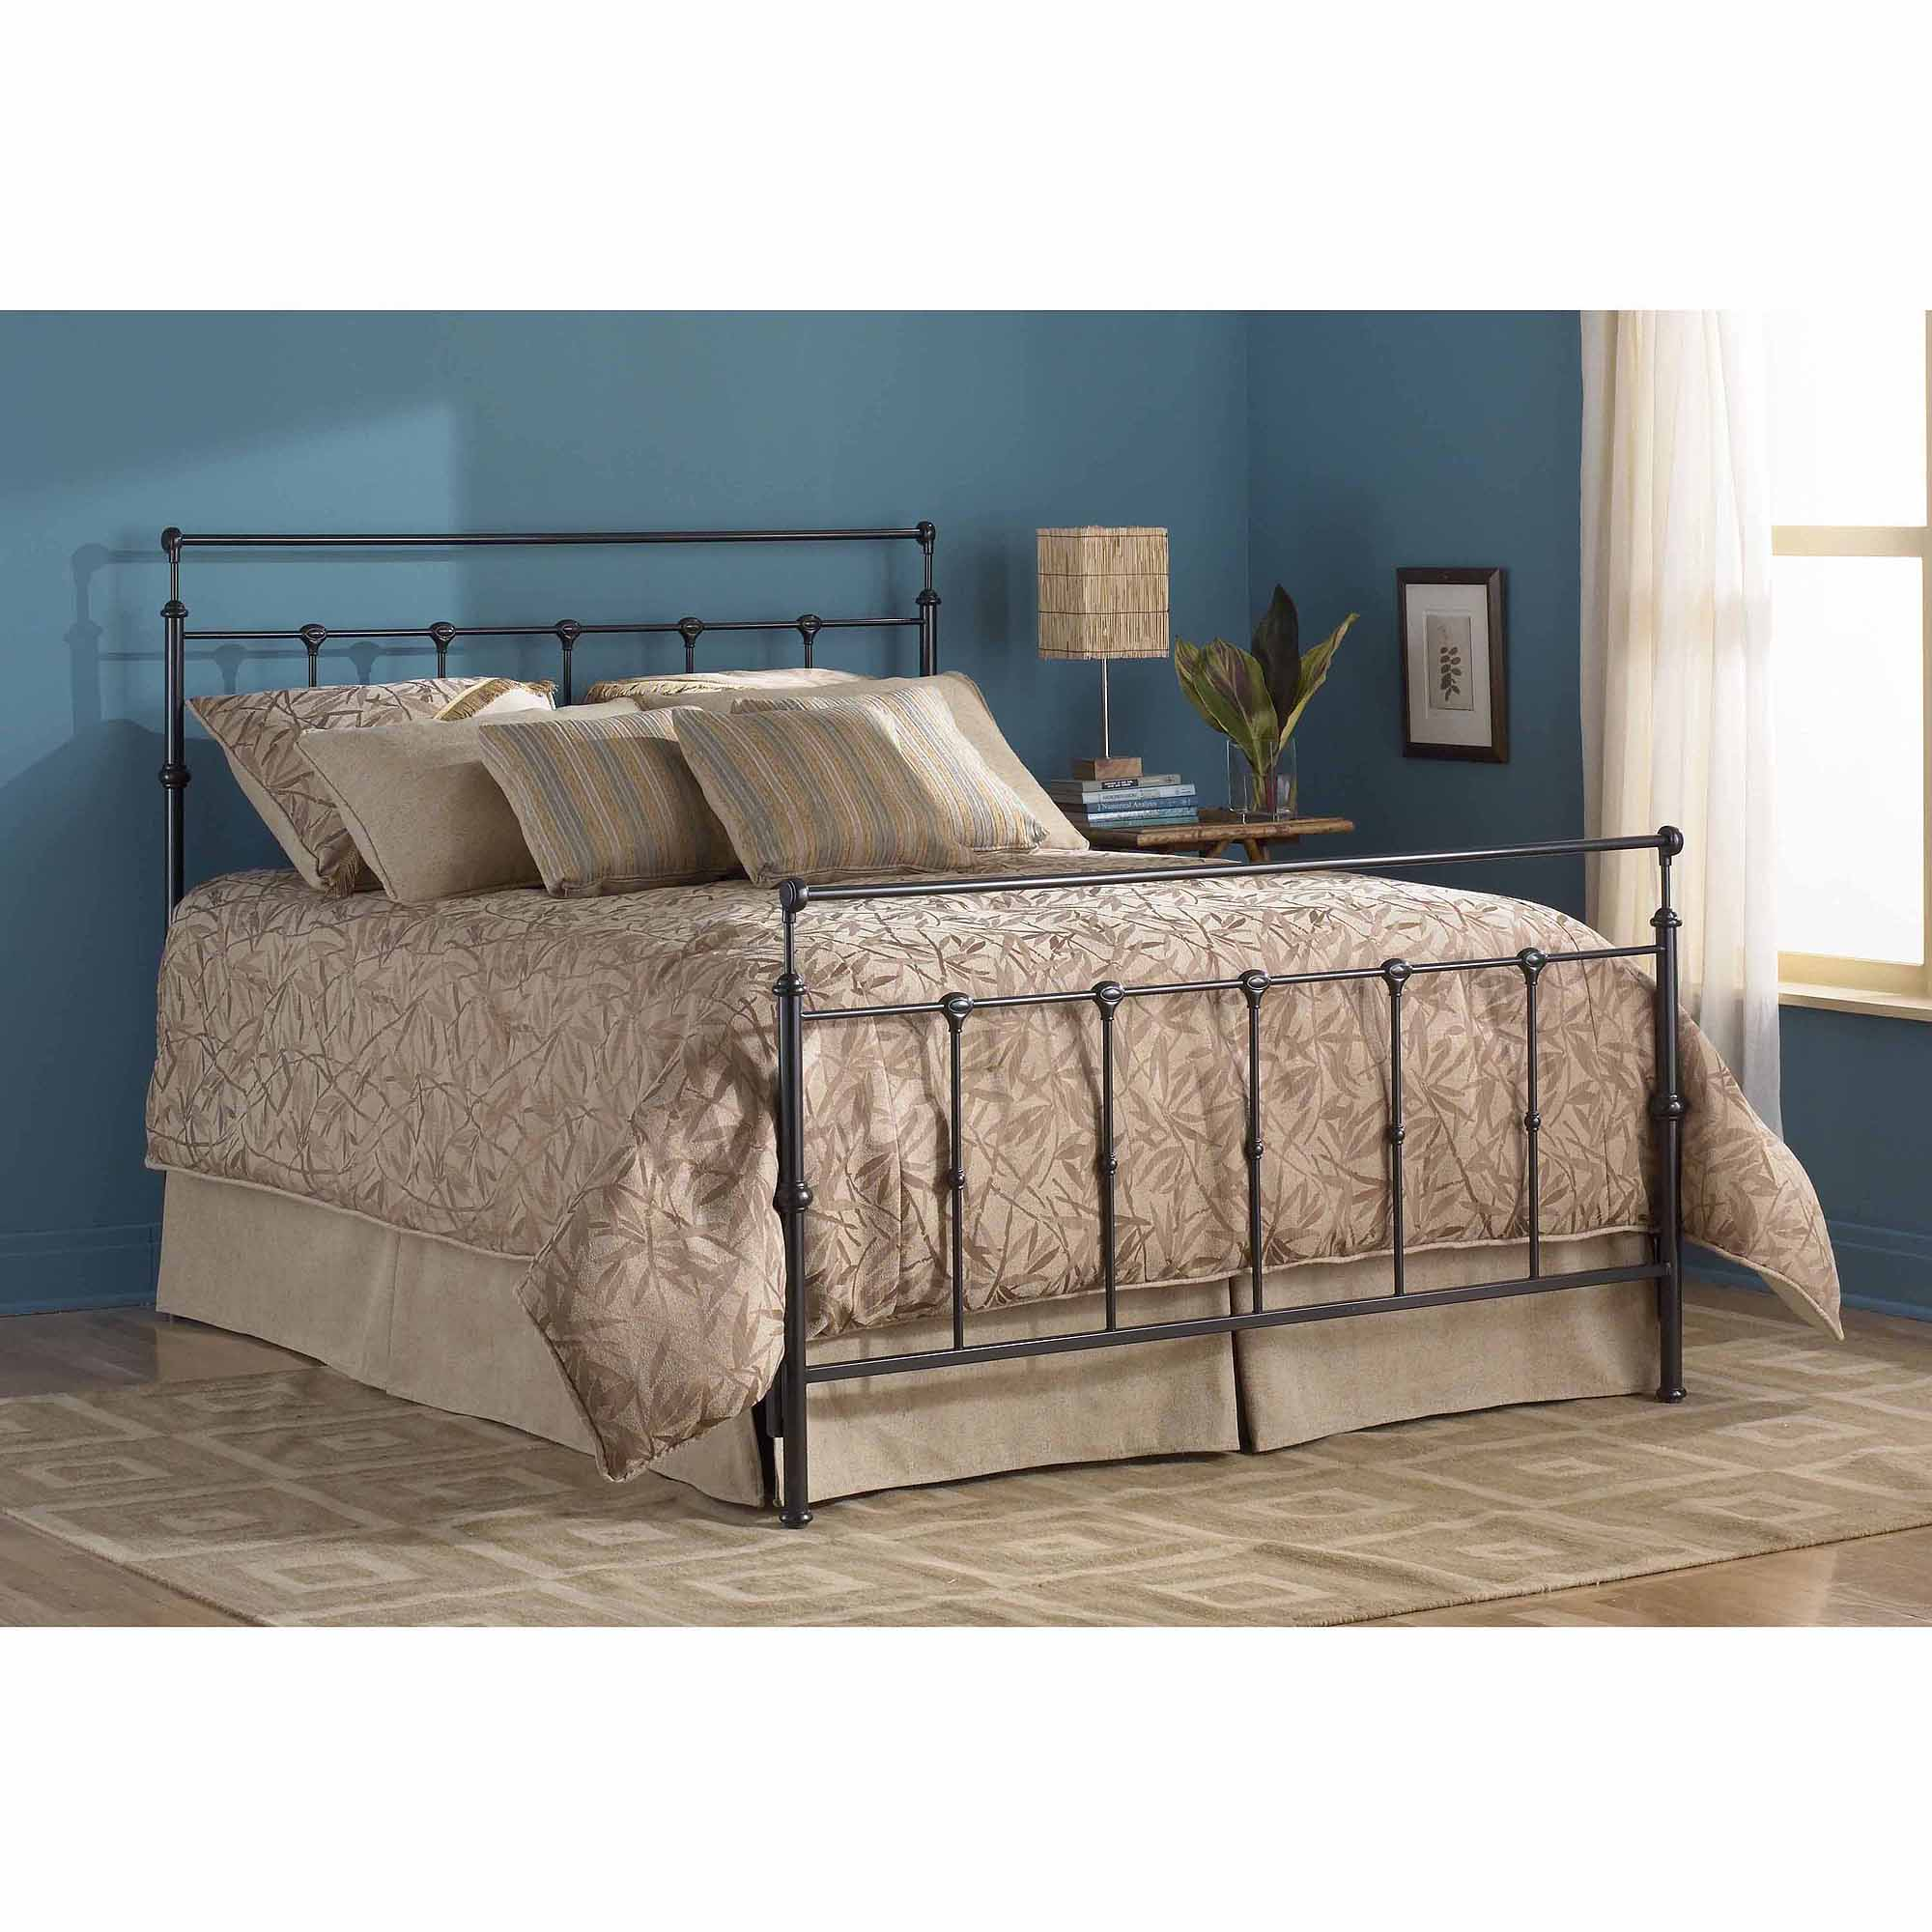 Winslow King Bed without Frame, Mahogany Gold